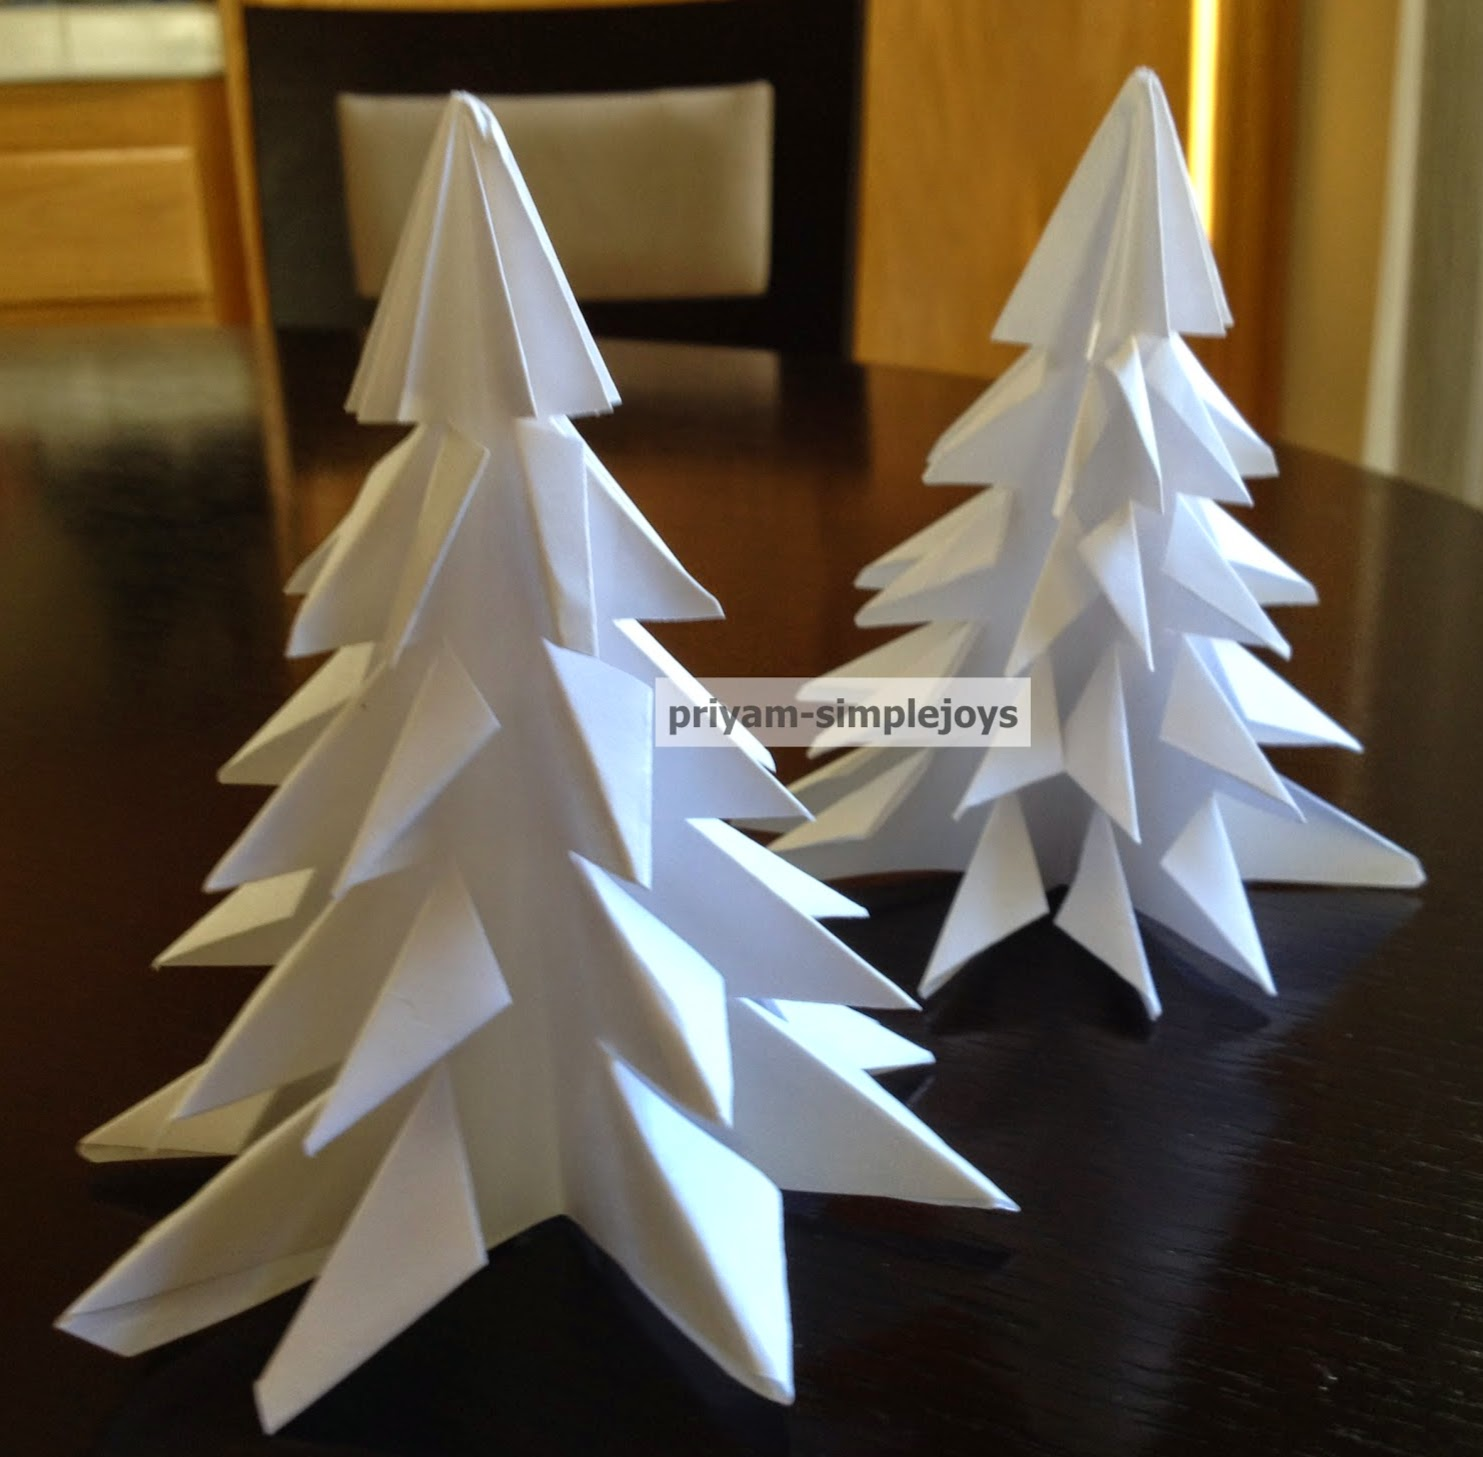 How to make christmas decorations out of paper - I Have Been Out Of Blogging For Some Time Just Got Busy With Things But Was Itching To Get Back And Do Something So Started Today With A Simple Paper